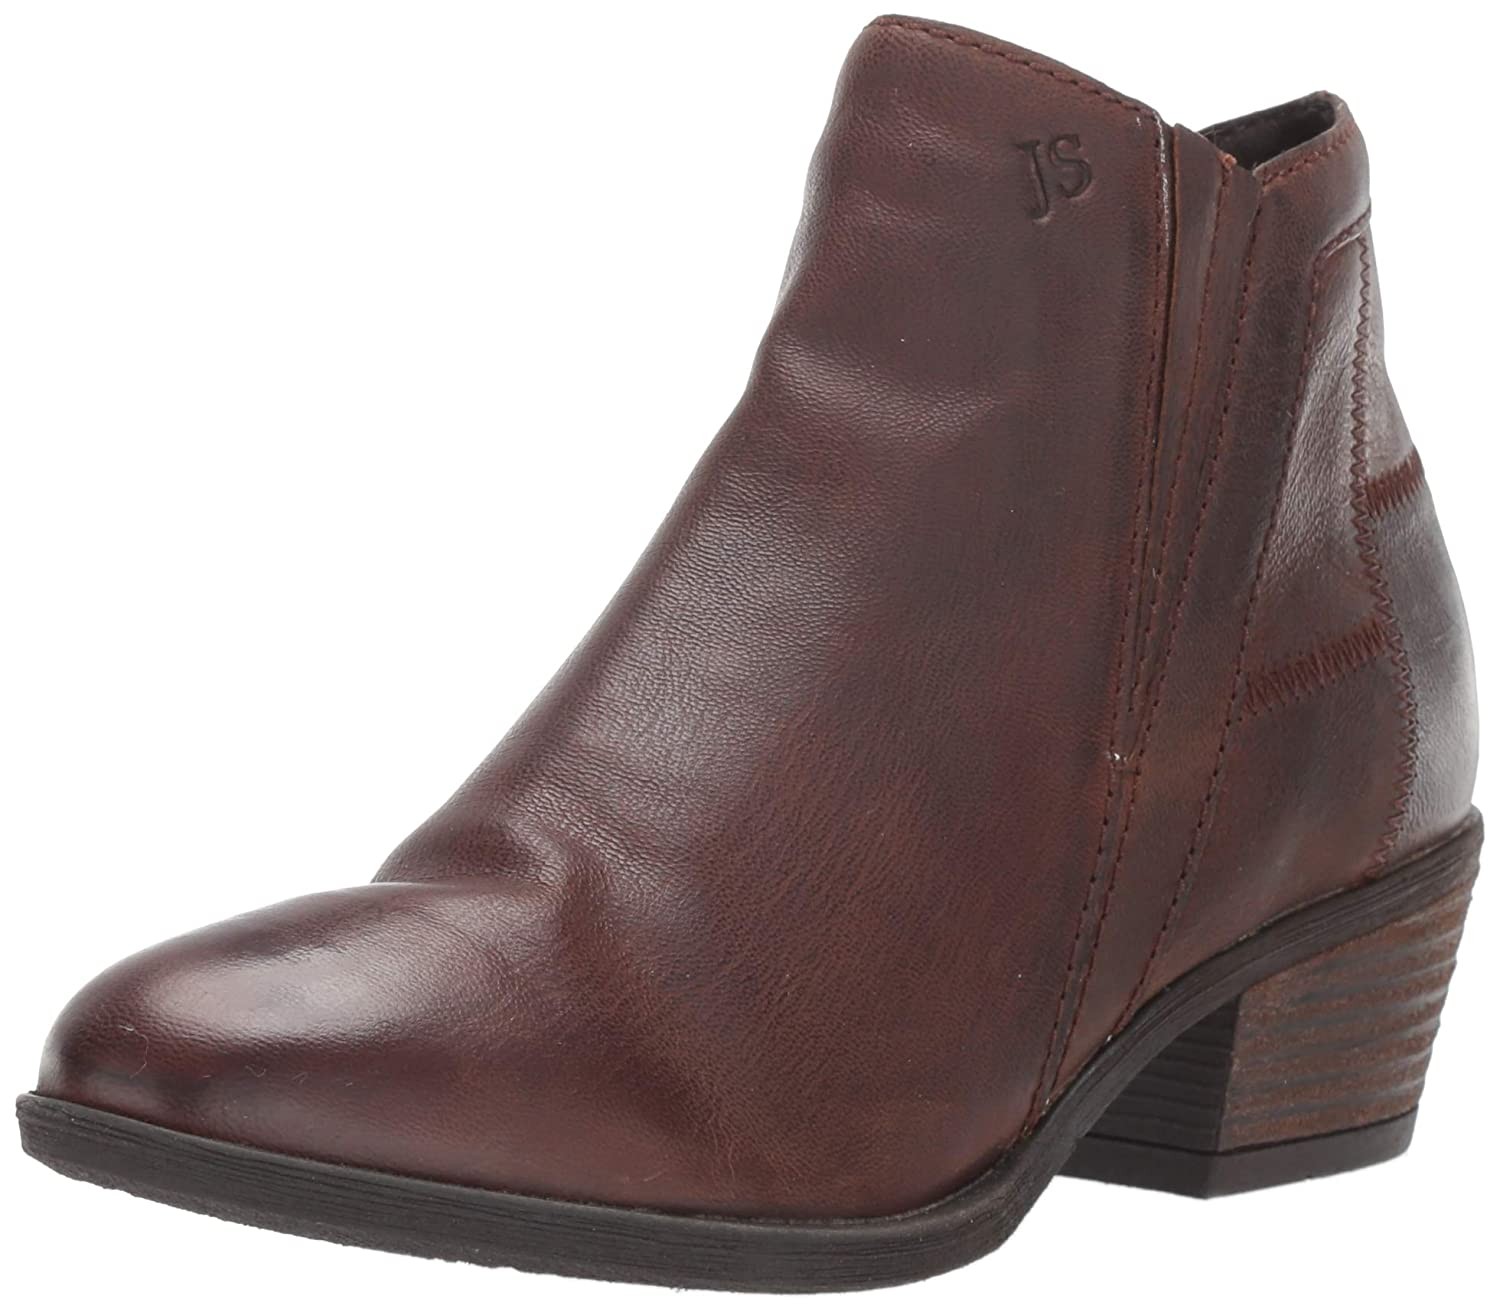 Mgold Josef Seibel Womens Daphne 09 Ankle Boot